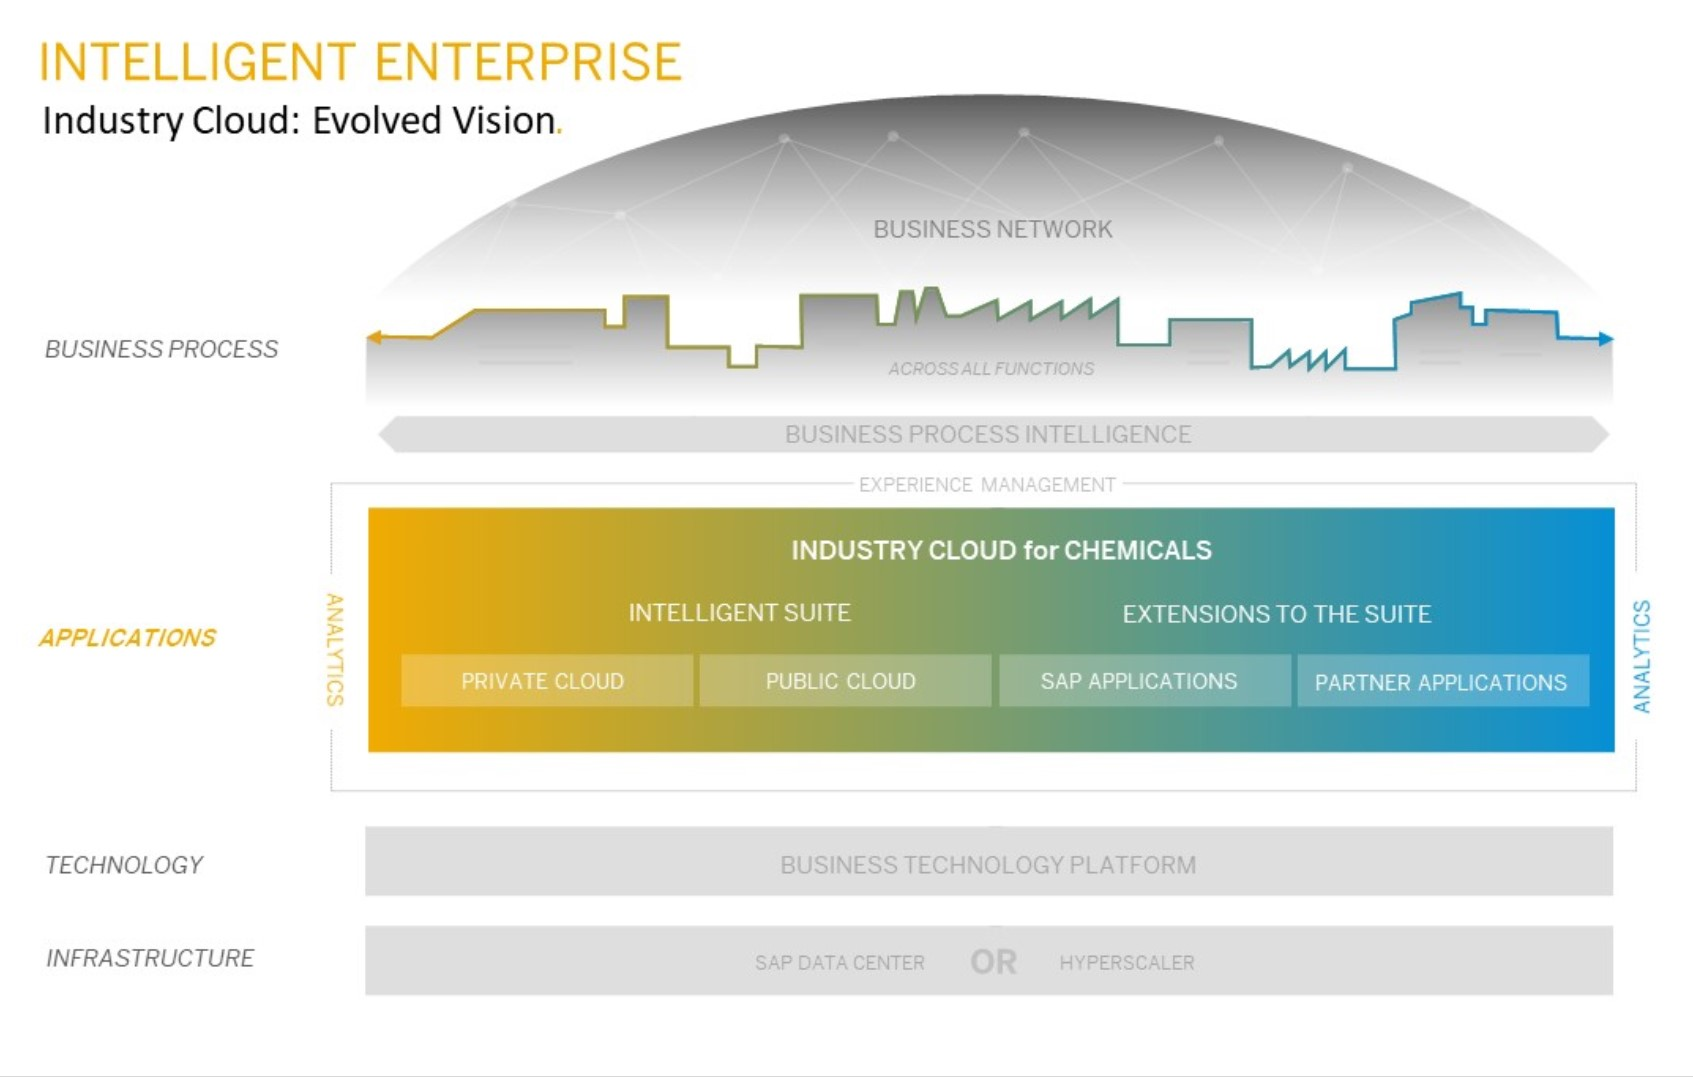 Figure%3A%20Applications%20Layer%20of%20the%20Intelligent%20Enterprise